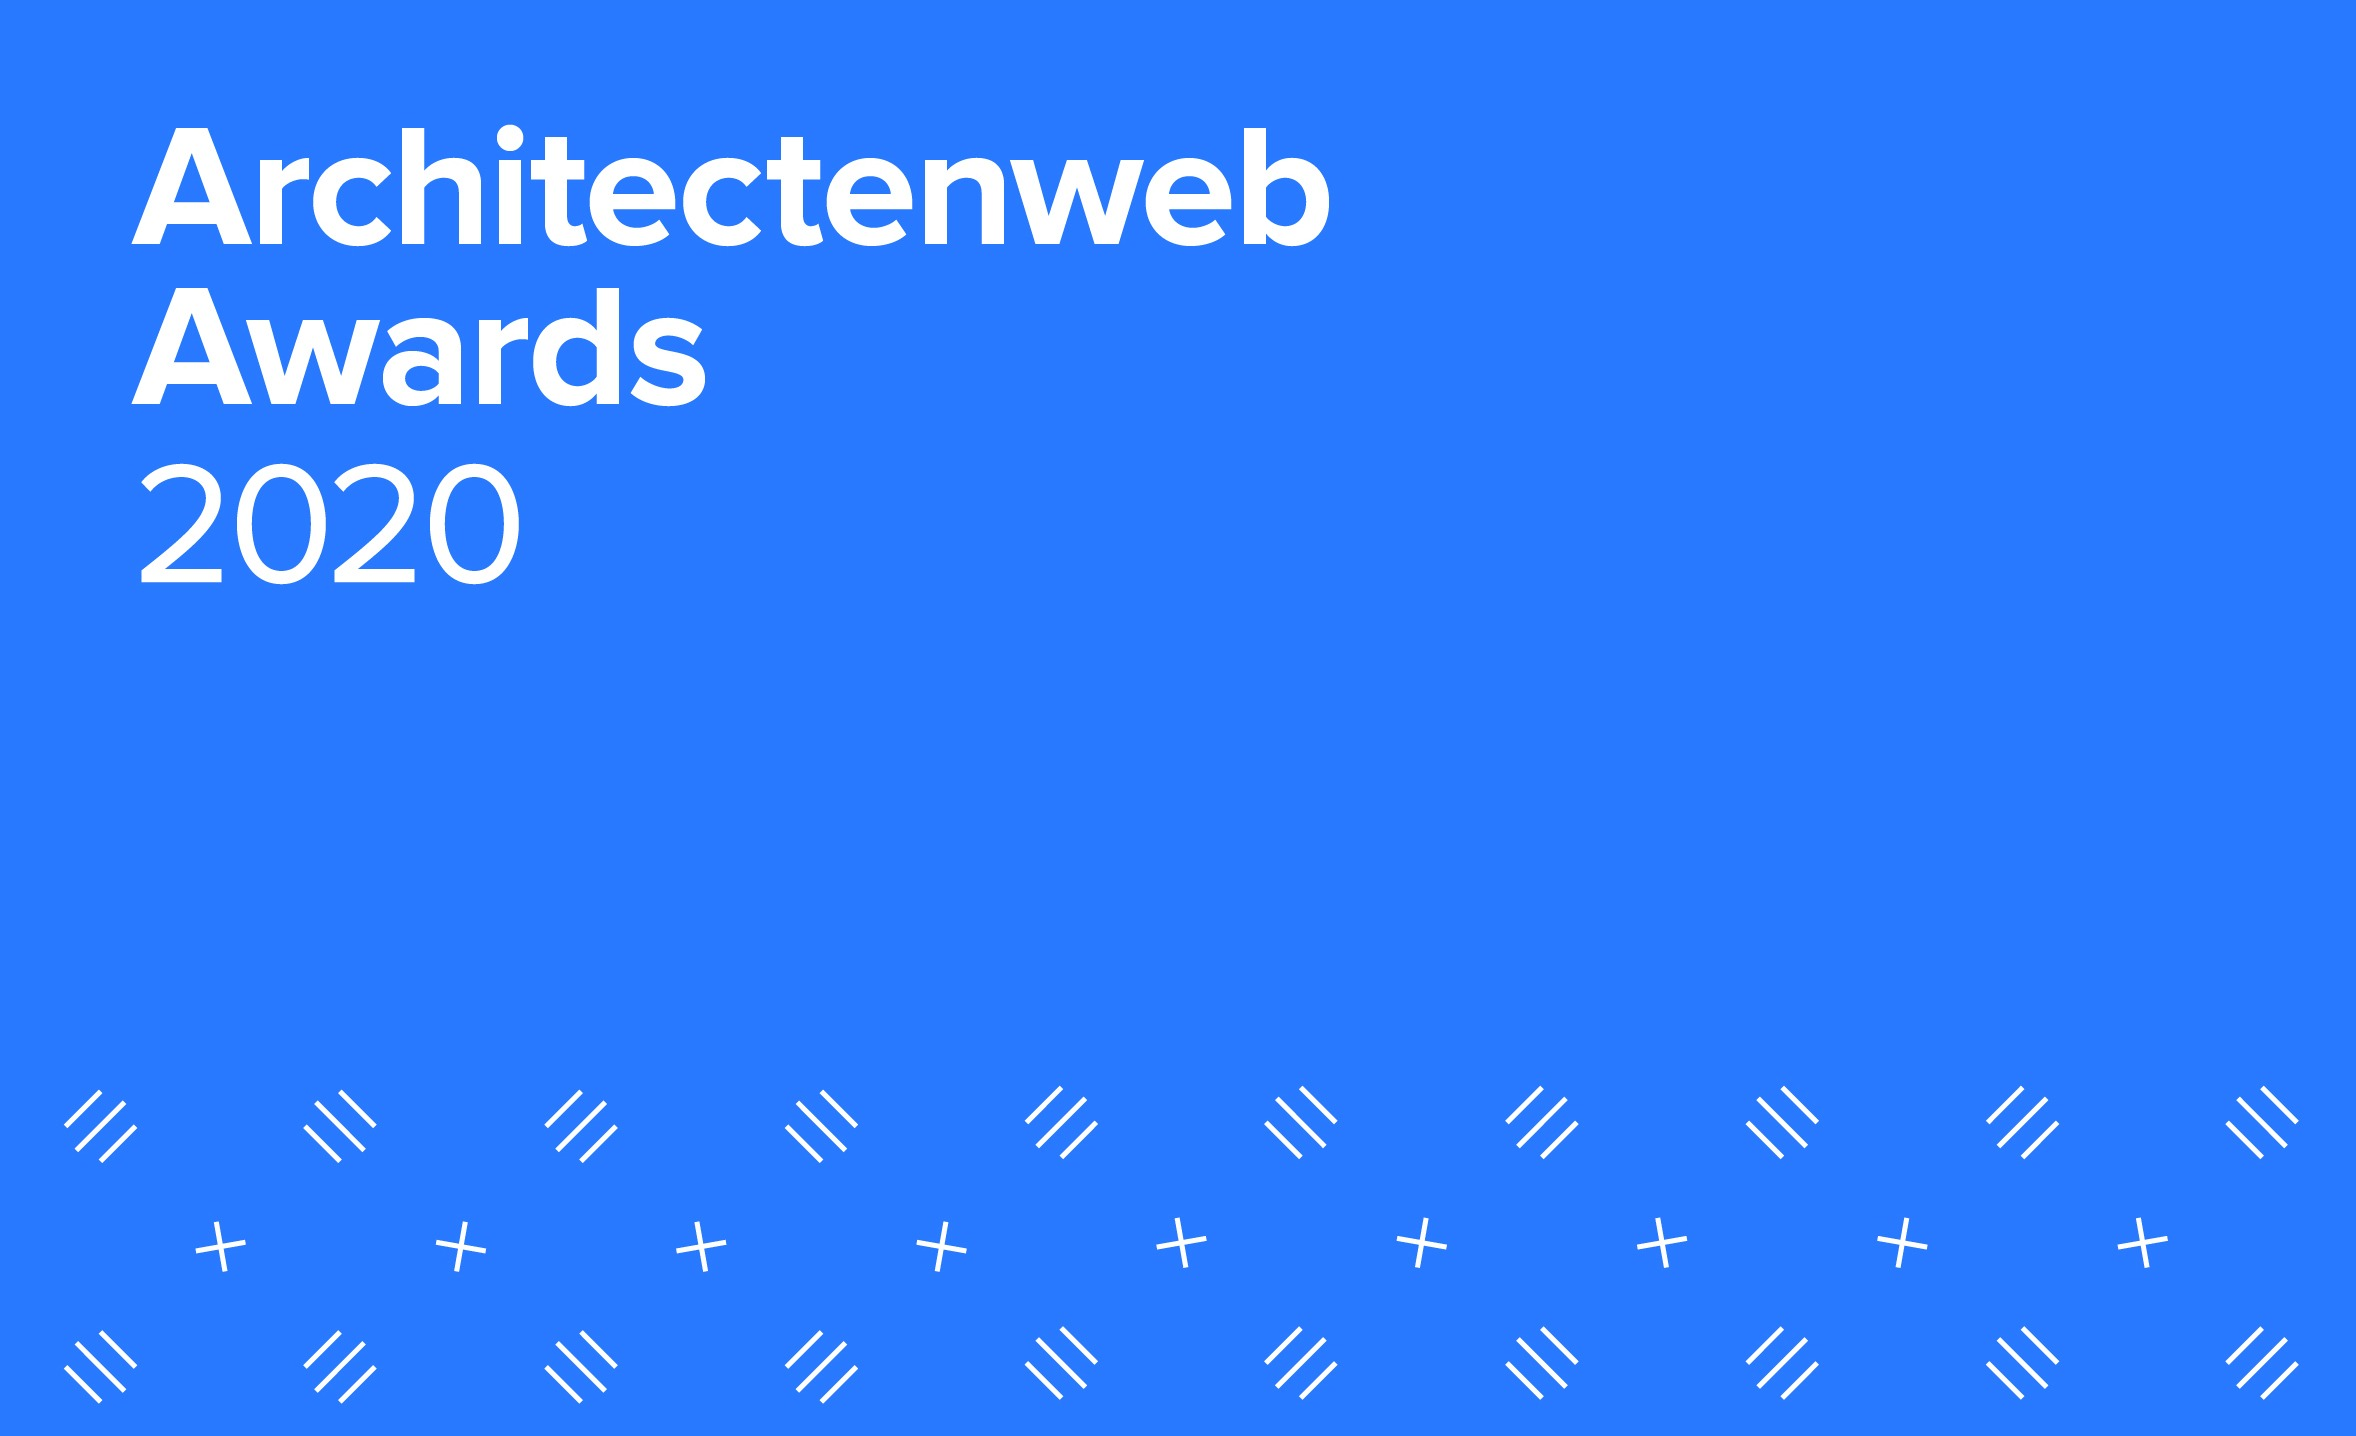 Gus Tielens proud to be part of the jury Architectenweb Awards 2020